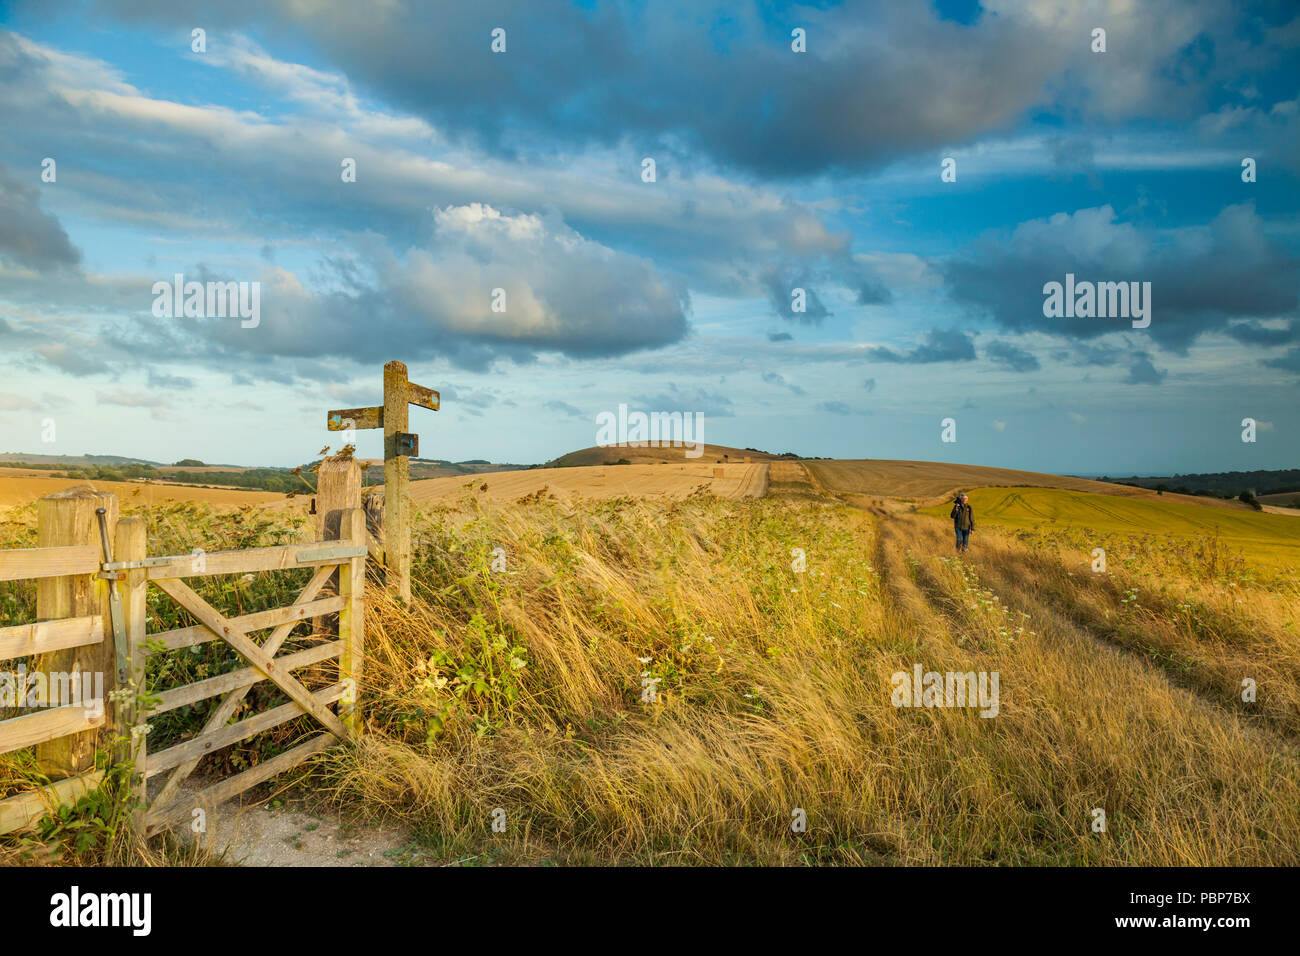 Summer evening in South Downs National Park, West Sussex, England. - Stock Image